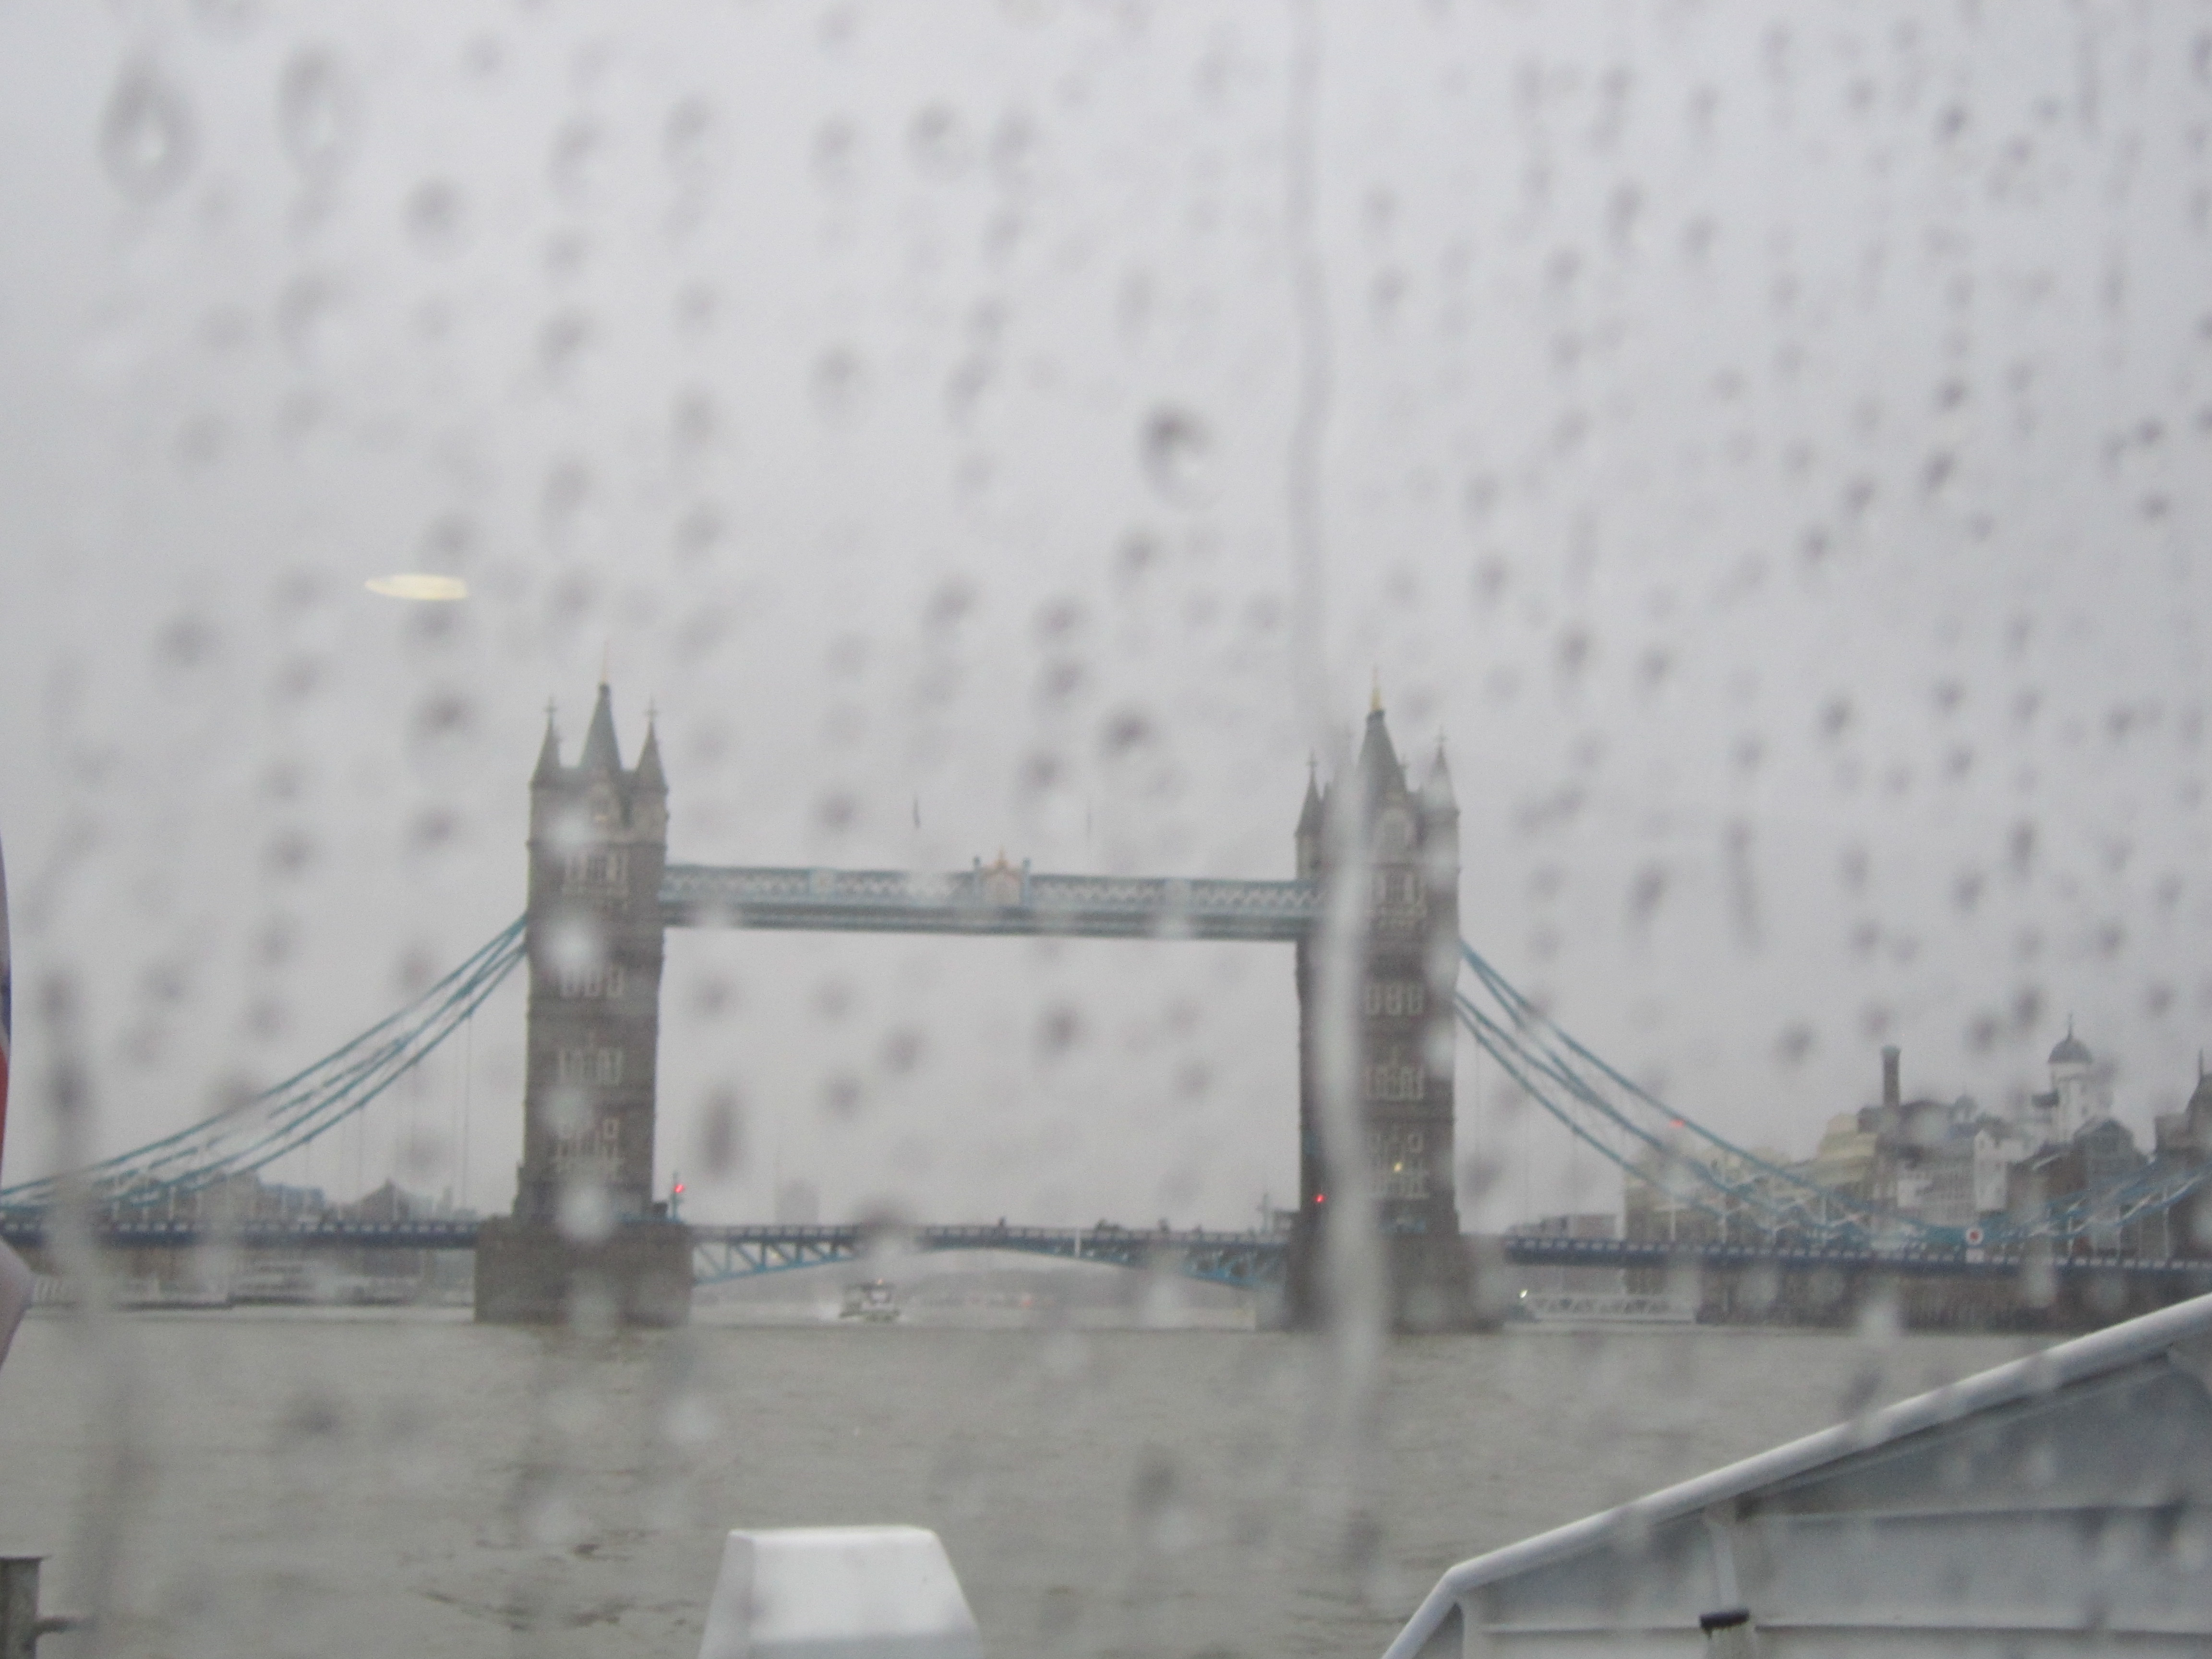 London Weather: 4 Reasons Why London's Weather Isn't THAT Bad